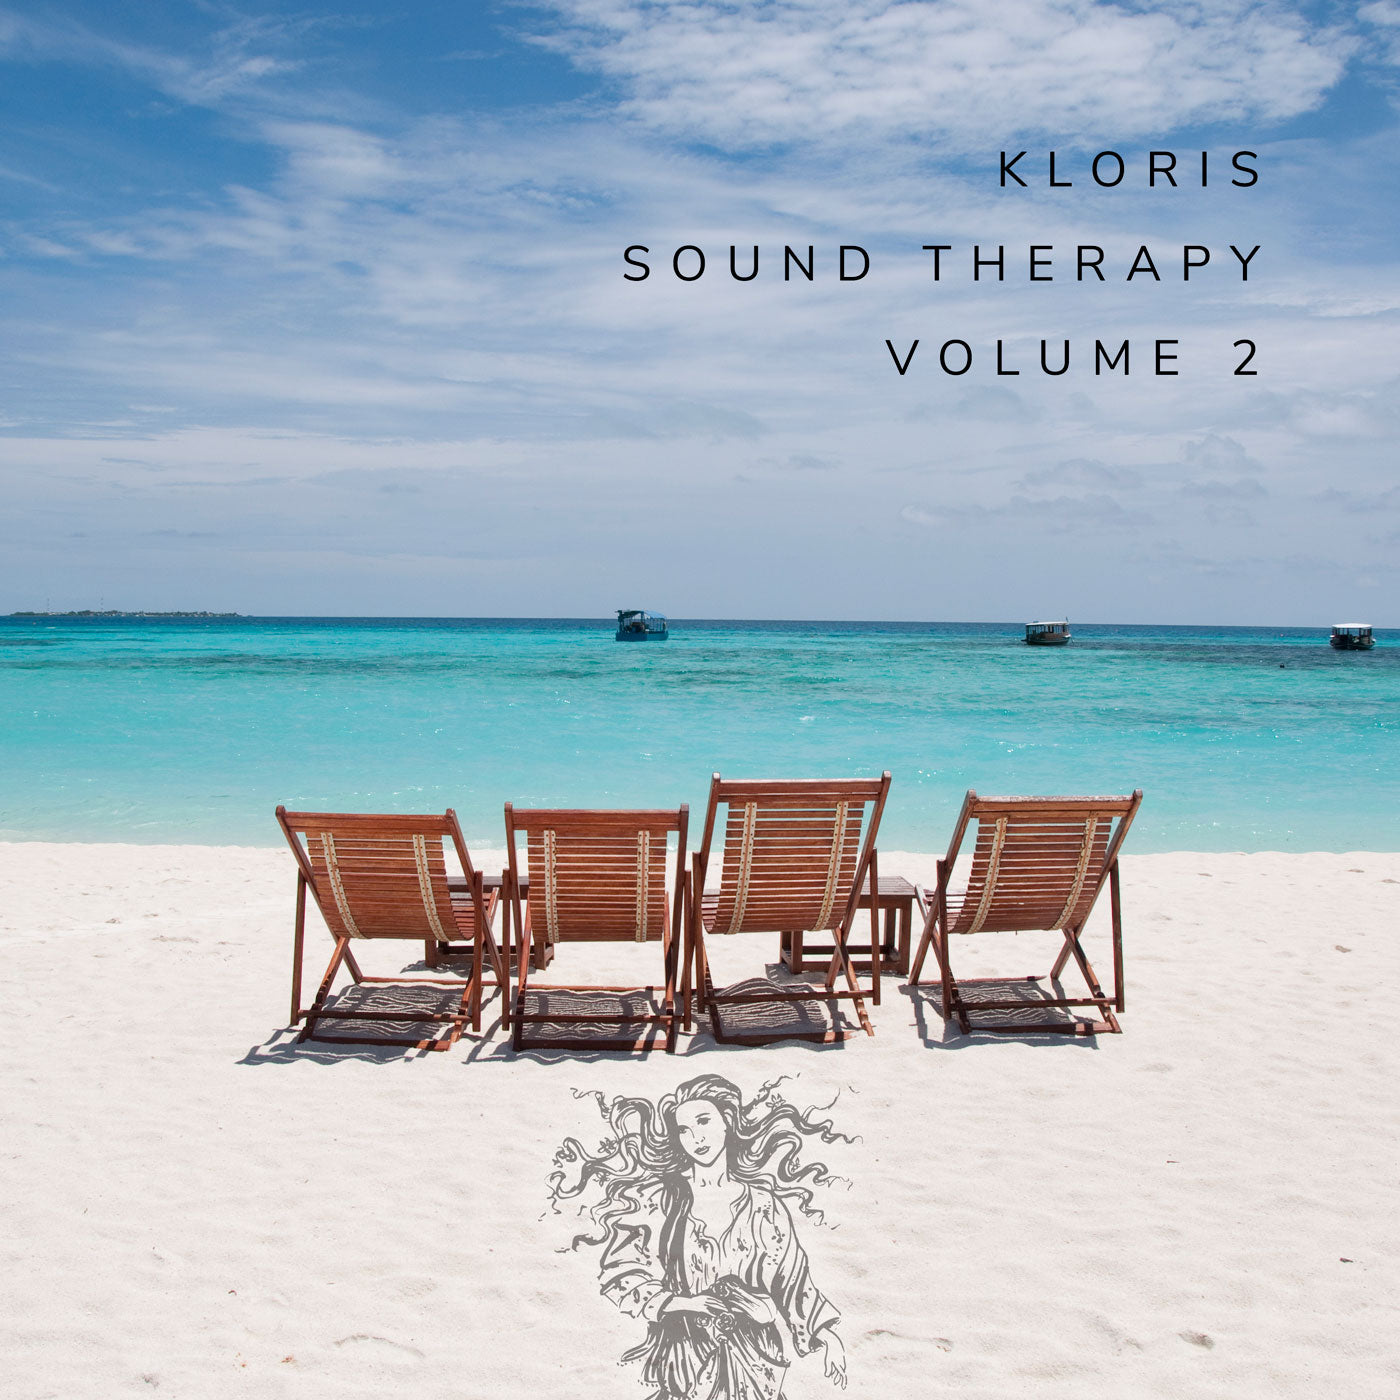 Down by the beach - sound therapy volume two